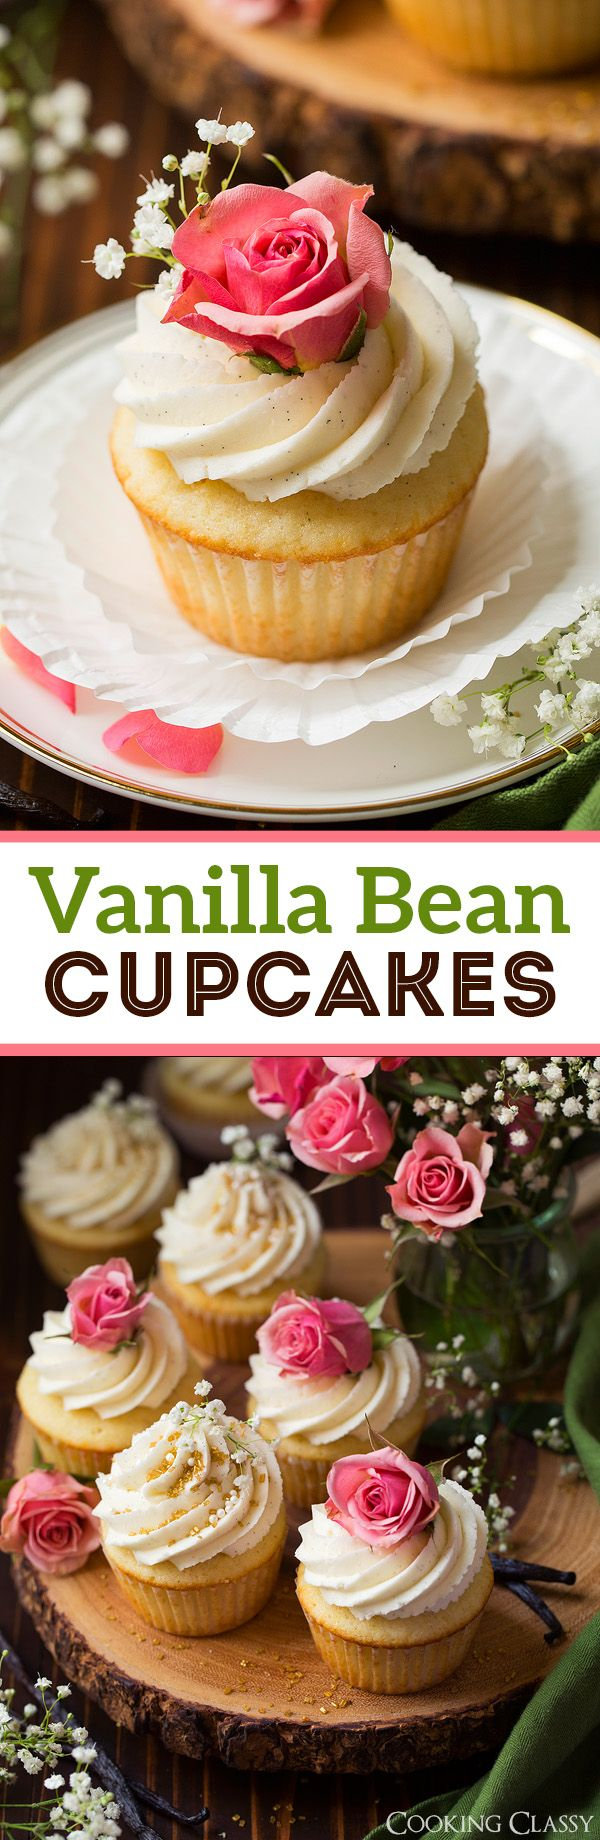 Sweet vanilla bean cupcakes topped with a rich vanilla bean frosting. Packed with natural vanilla flavor and perfect for any occasion.